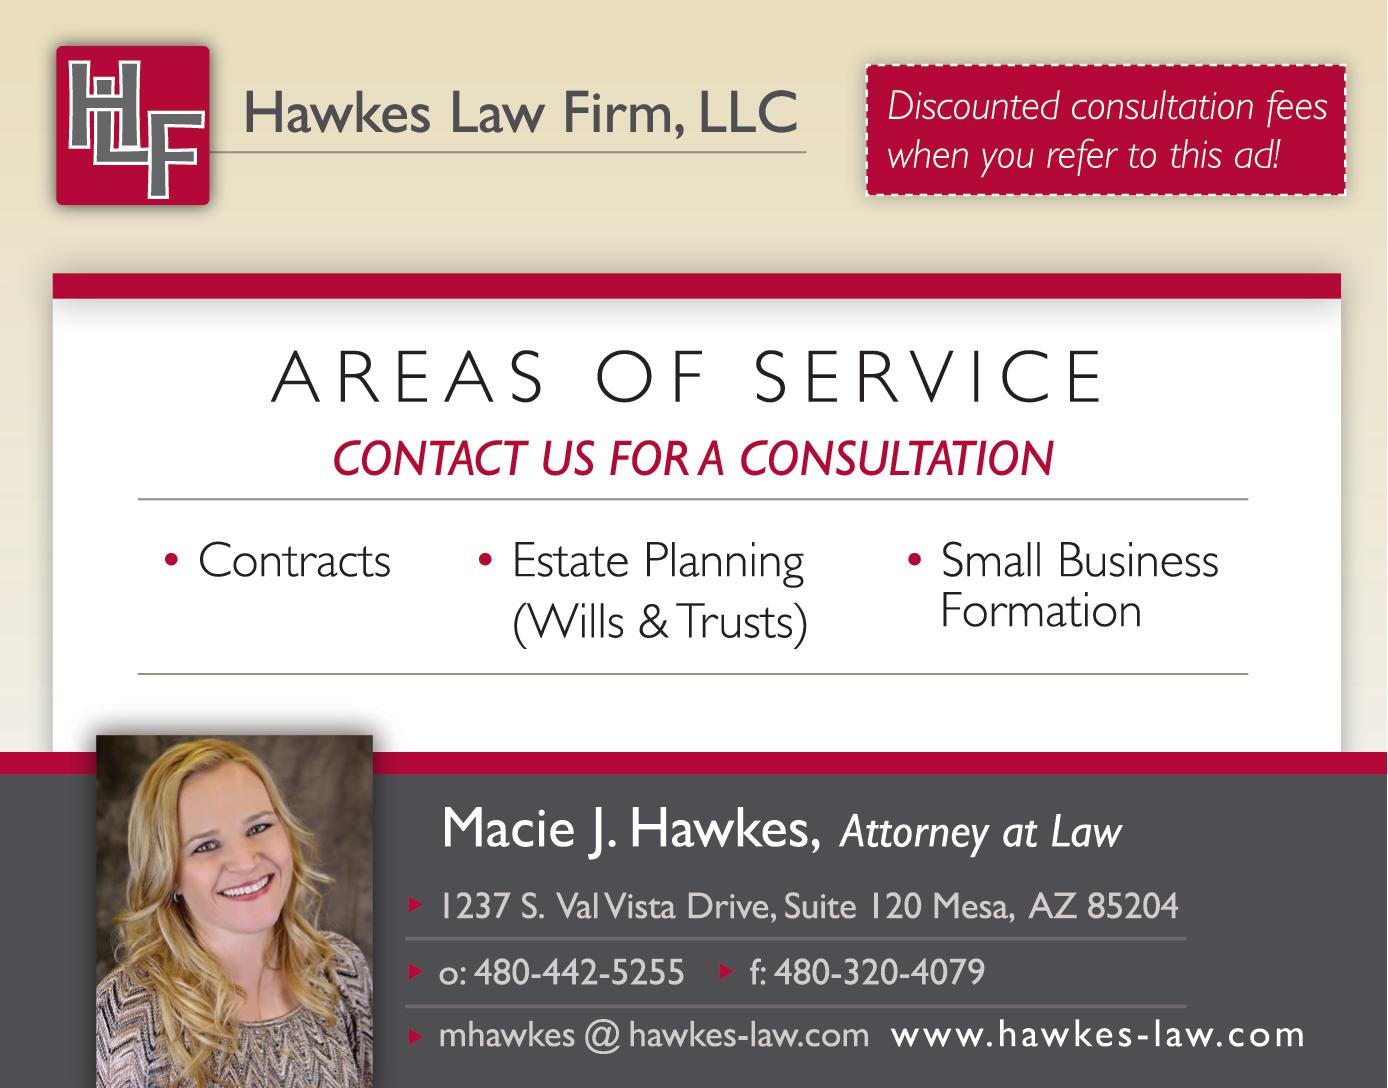 Hawkes Law Firm, LLC